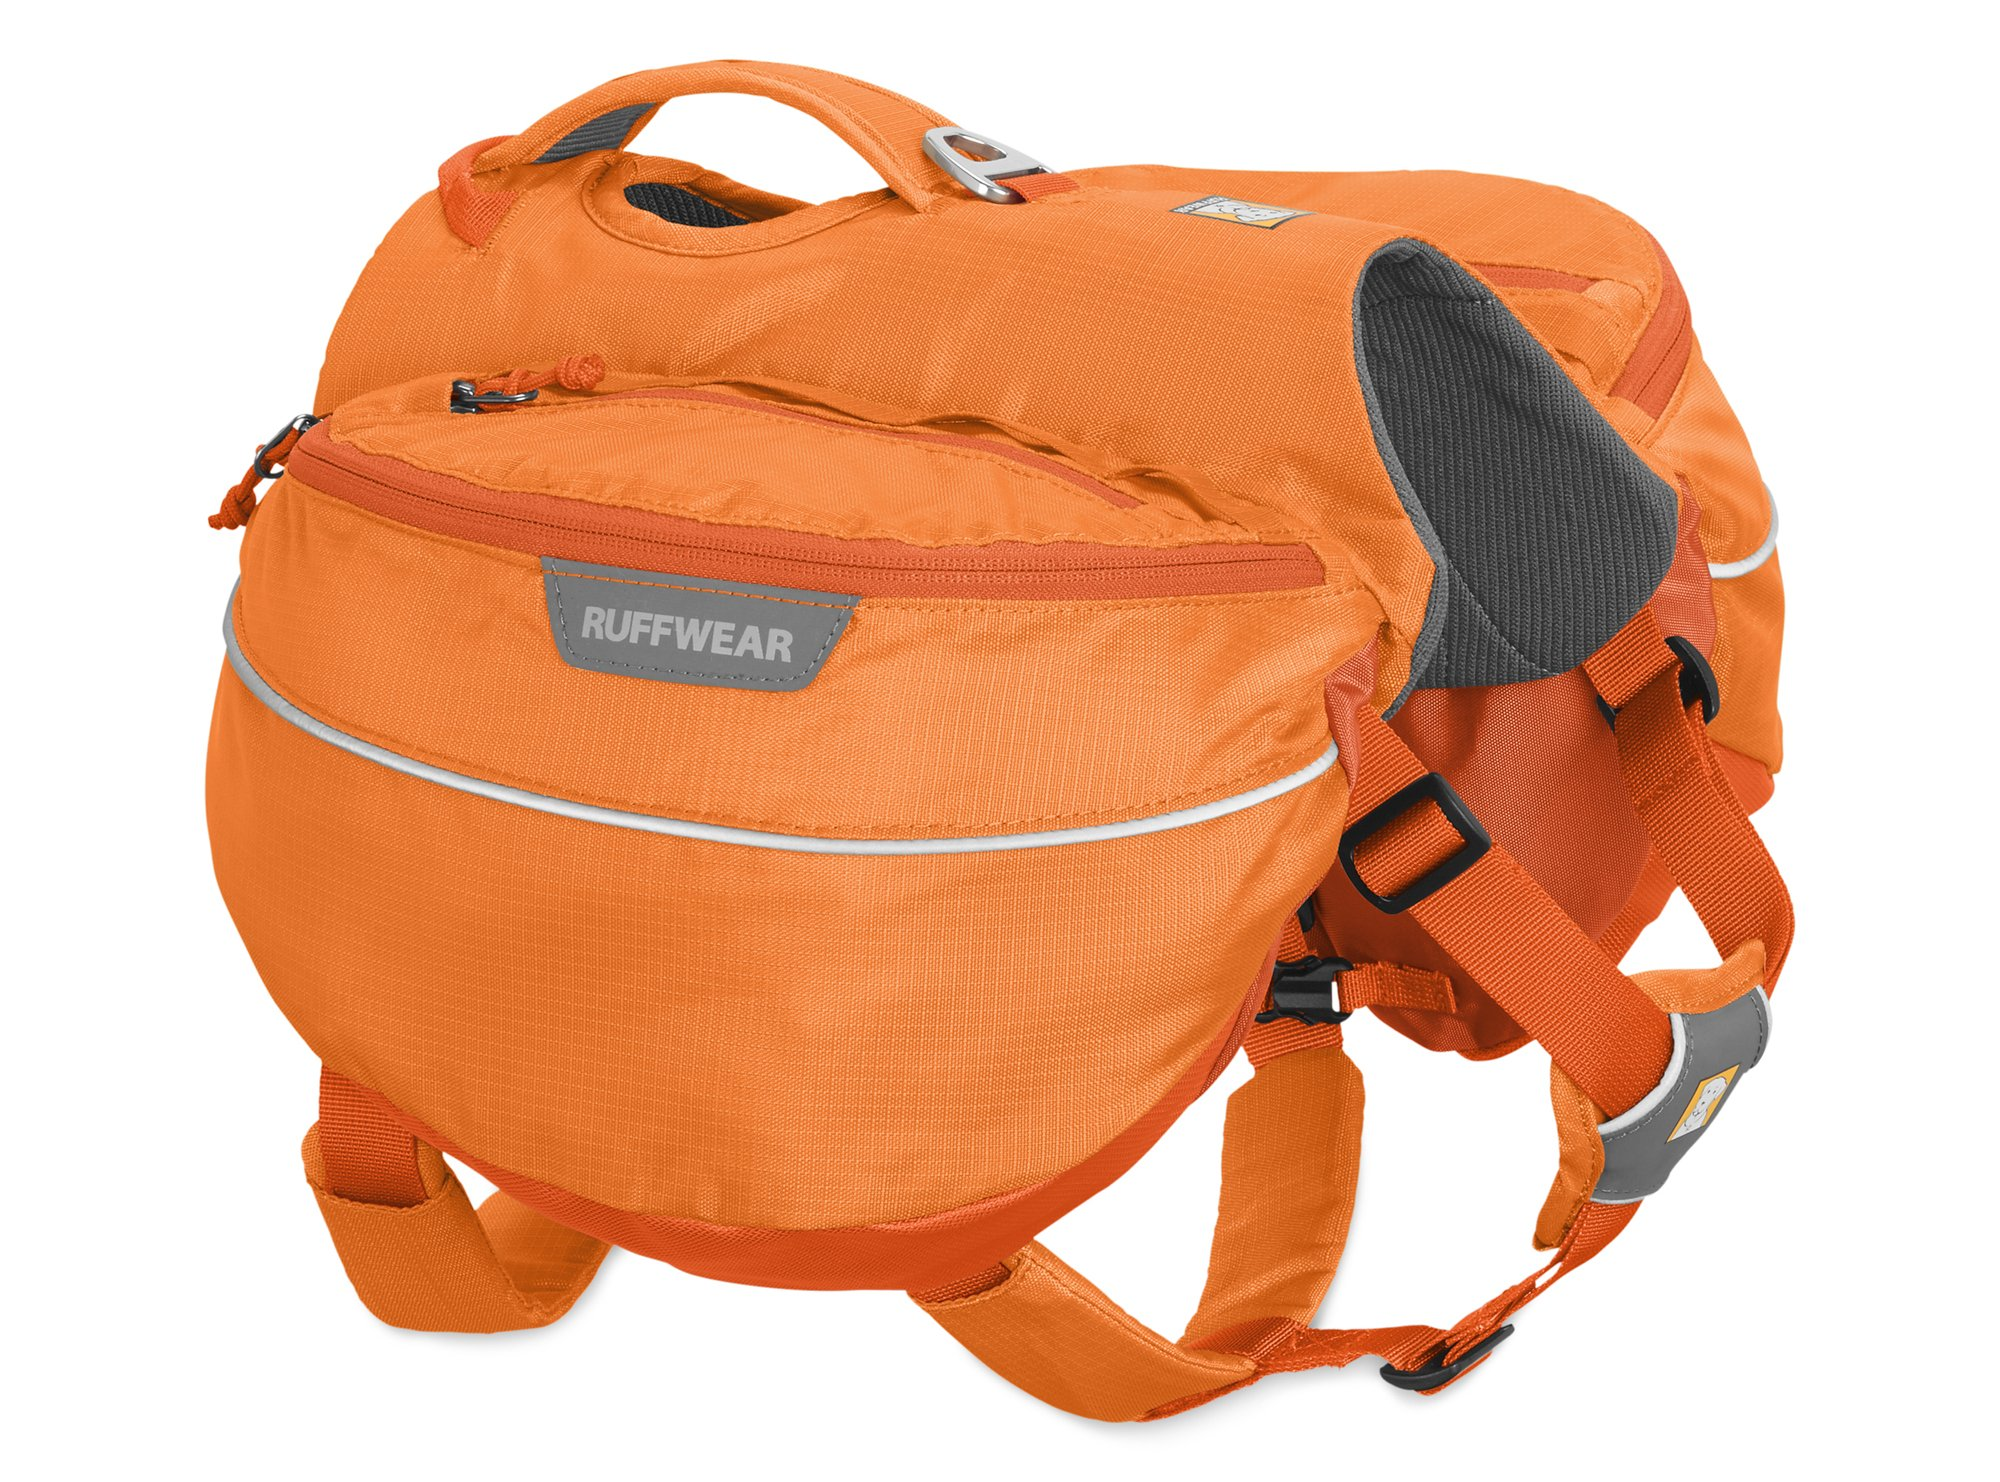 RUFFWEAR - Approach Pack, Orange Poppy (2017), Medium